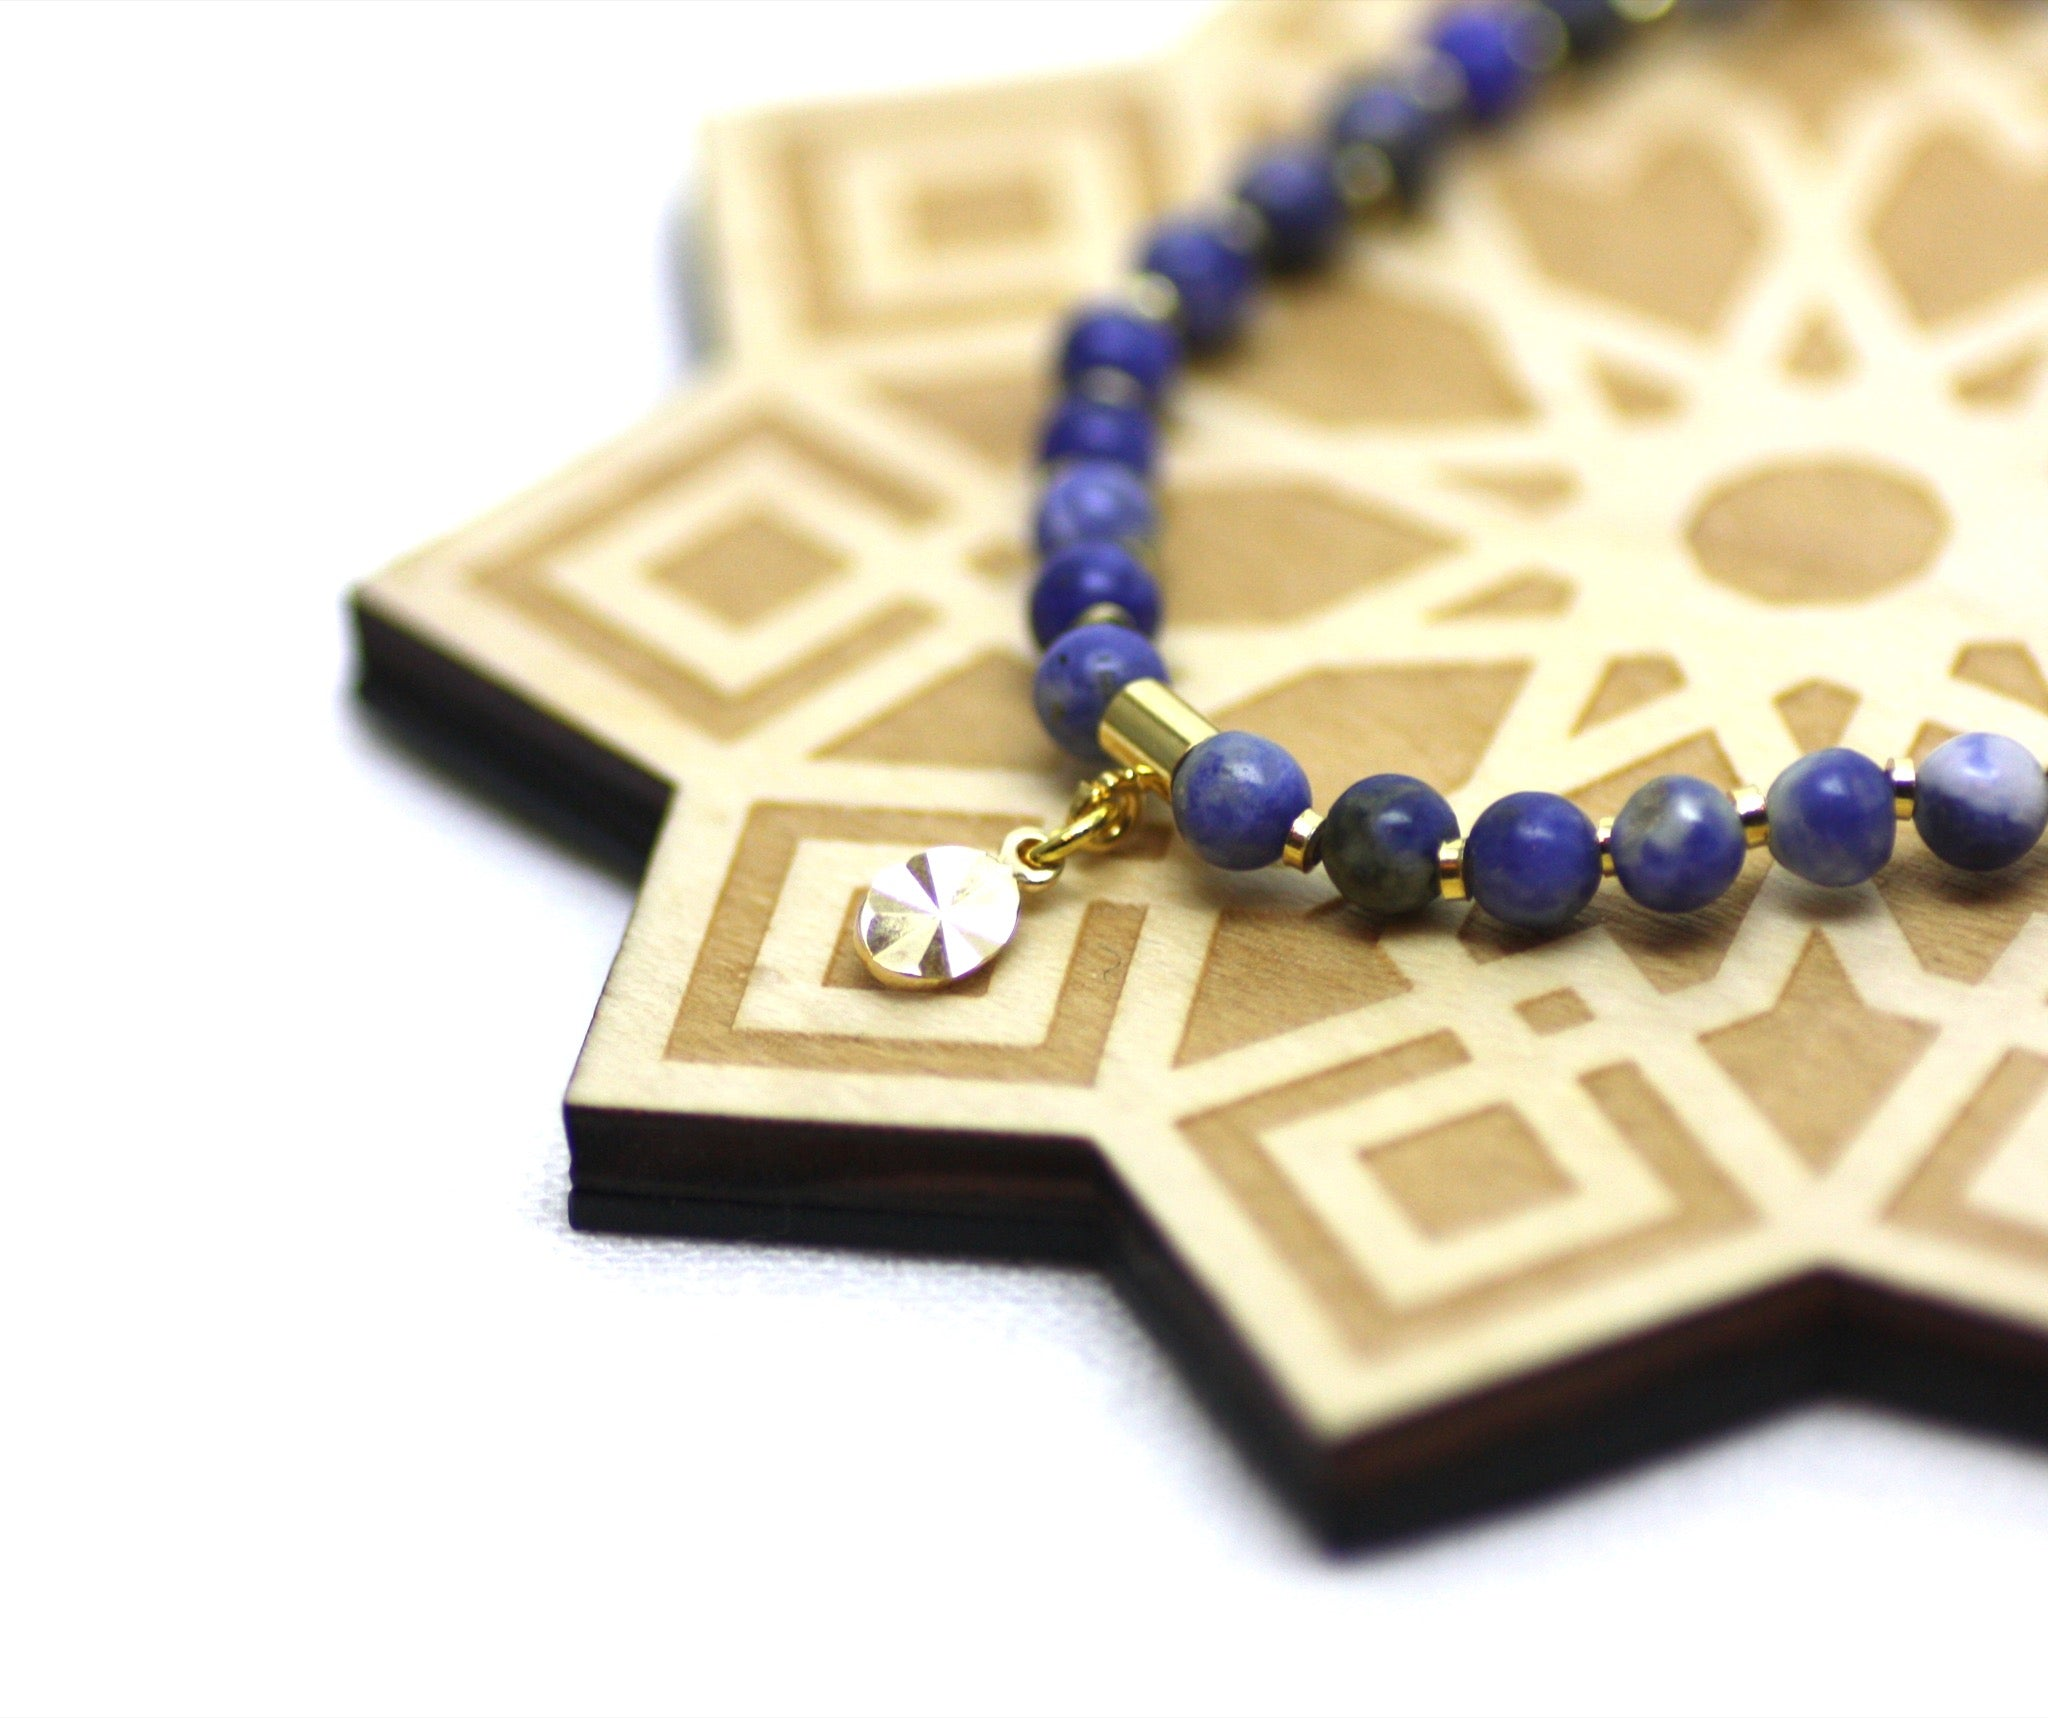 Sodalite and Gold Wrist Tasbih